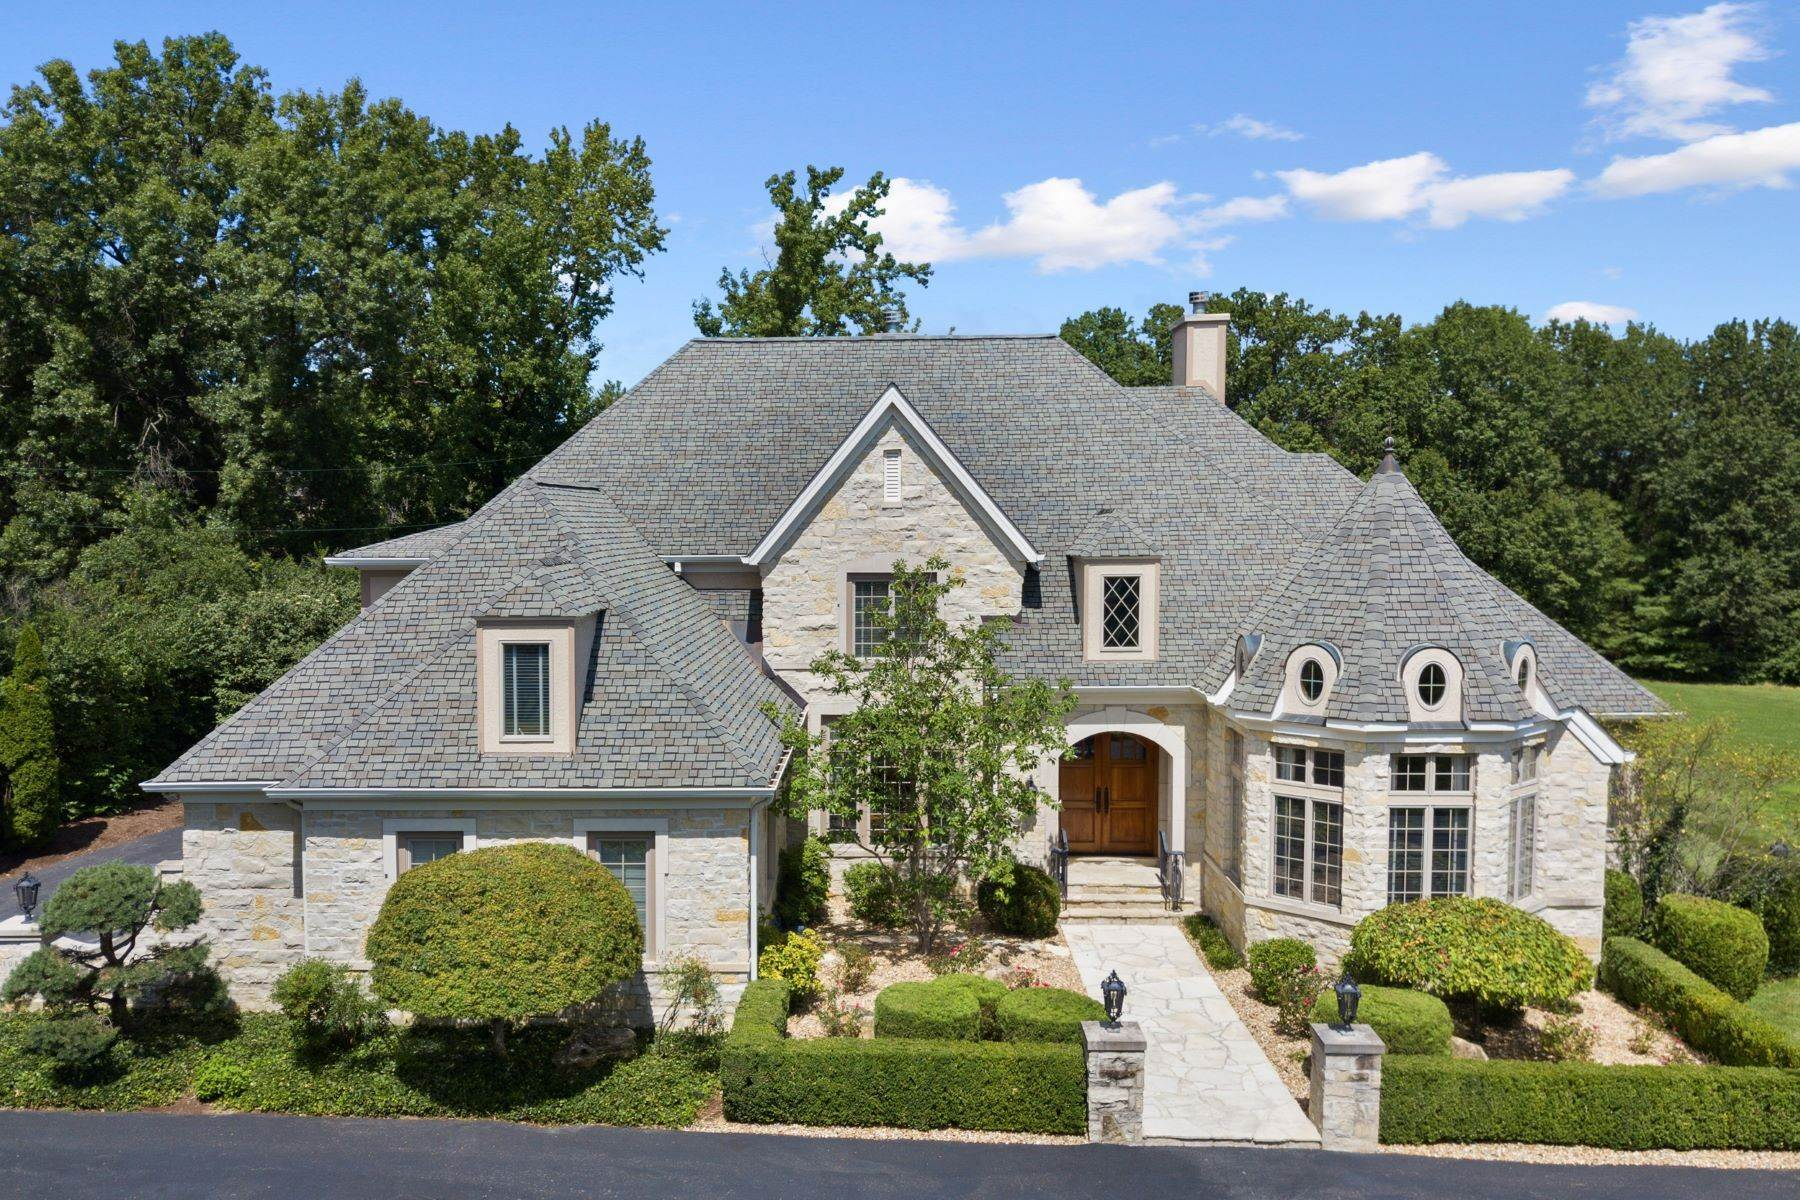 Single Family Homes for Sale at Outstanding Private Gated Stone 1.5 Story 10831 Ladue Road, Creve Coeur, Missouri 63141 United States